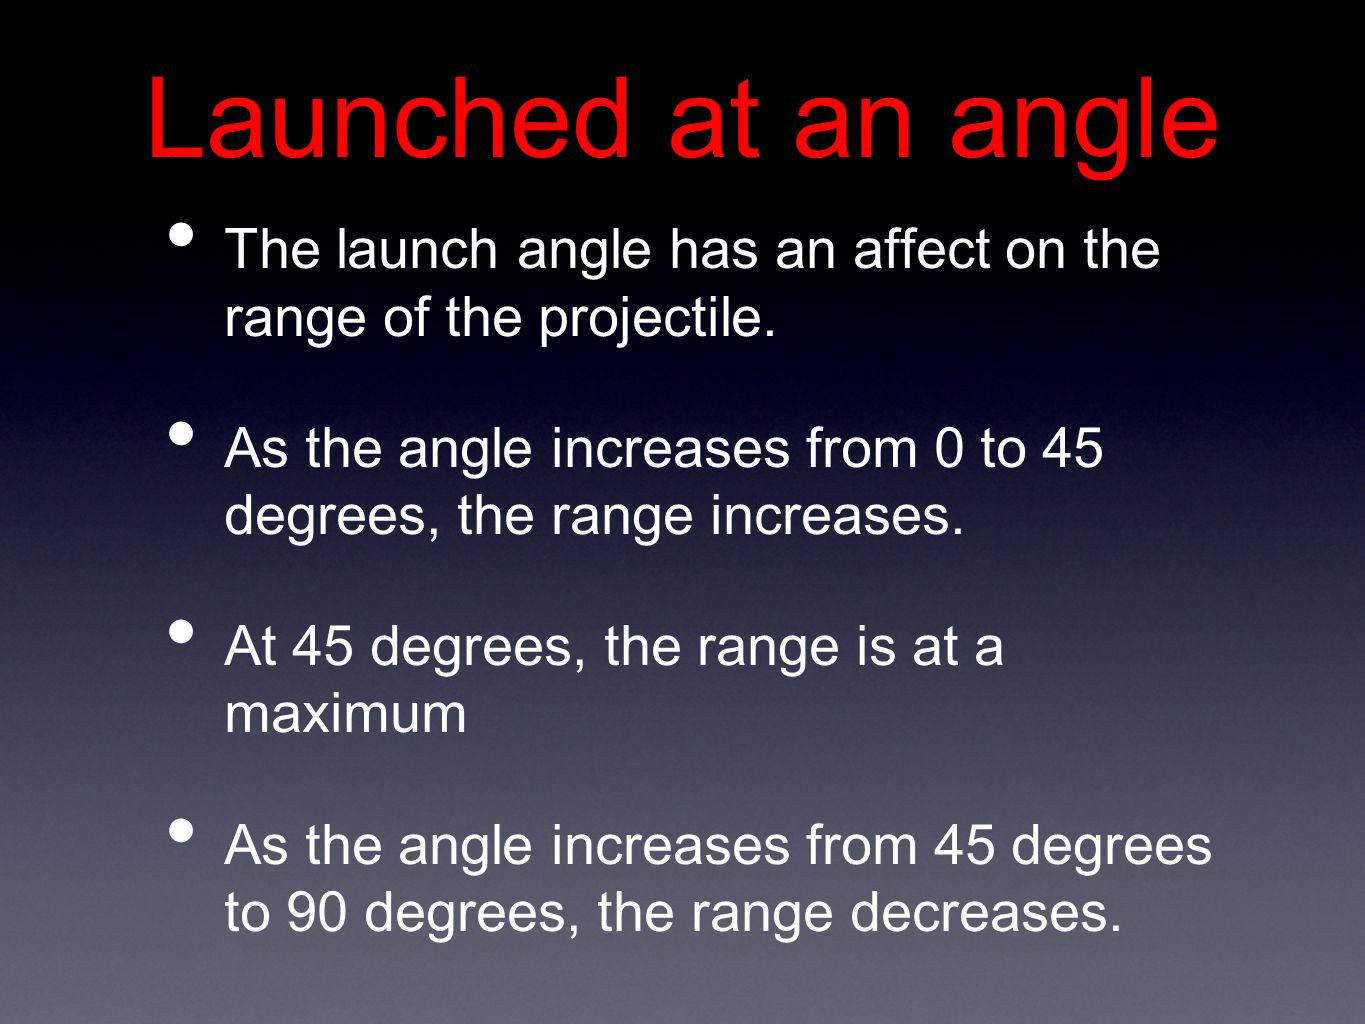 Launched at an angle The launch angle has an affect on the range of the projectile.